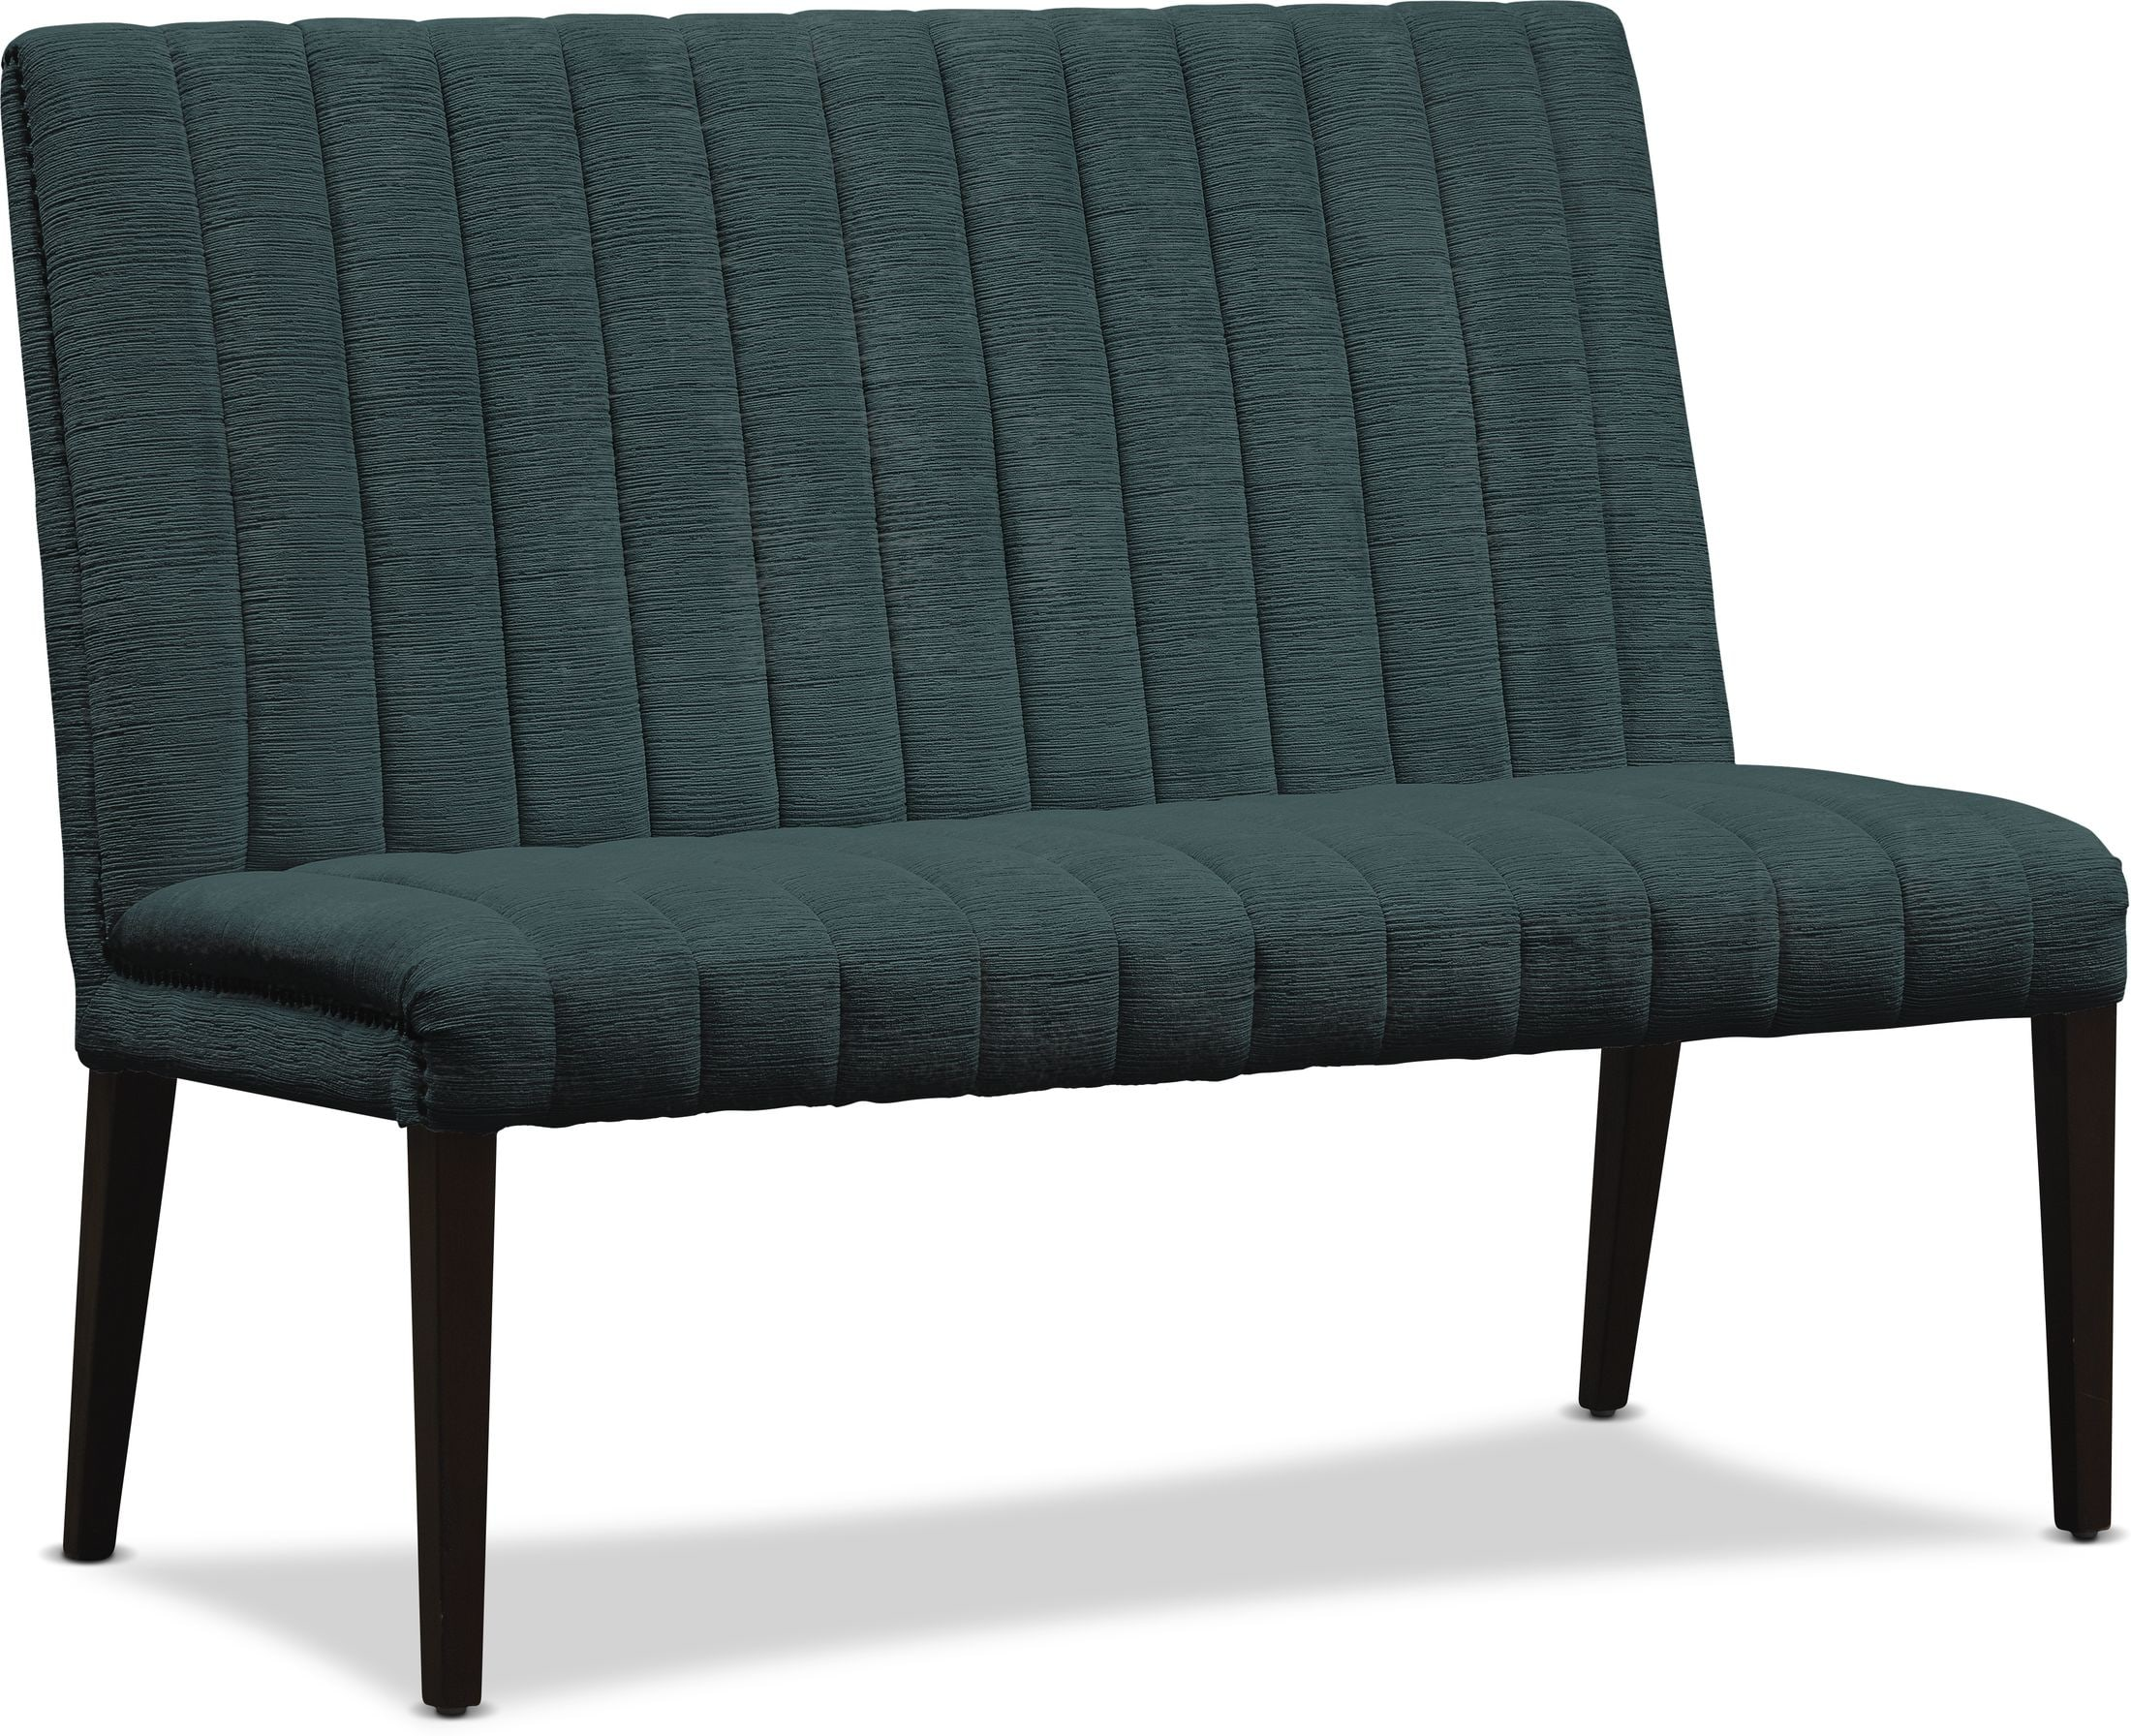 Dining Room Furniture - Artemis Bench - Teal